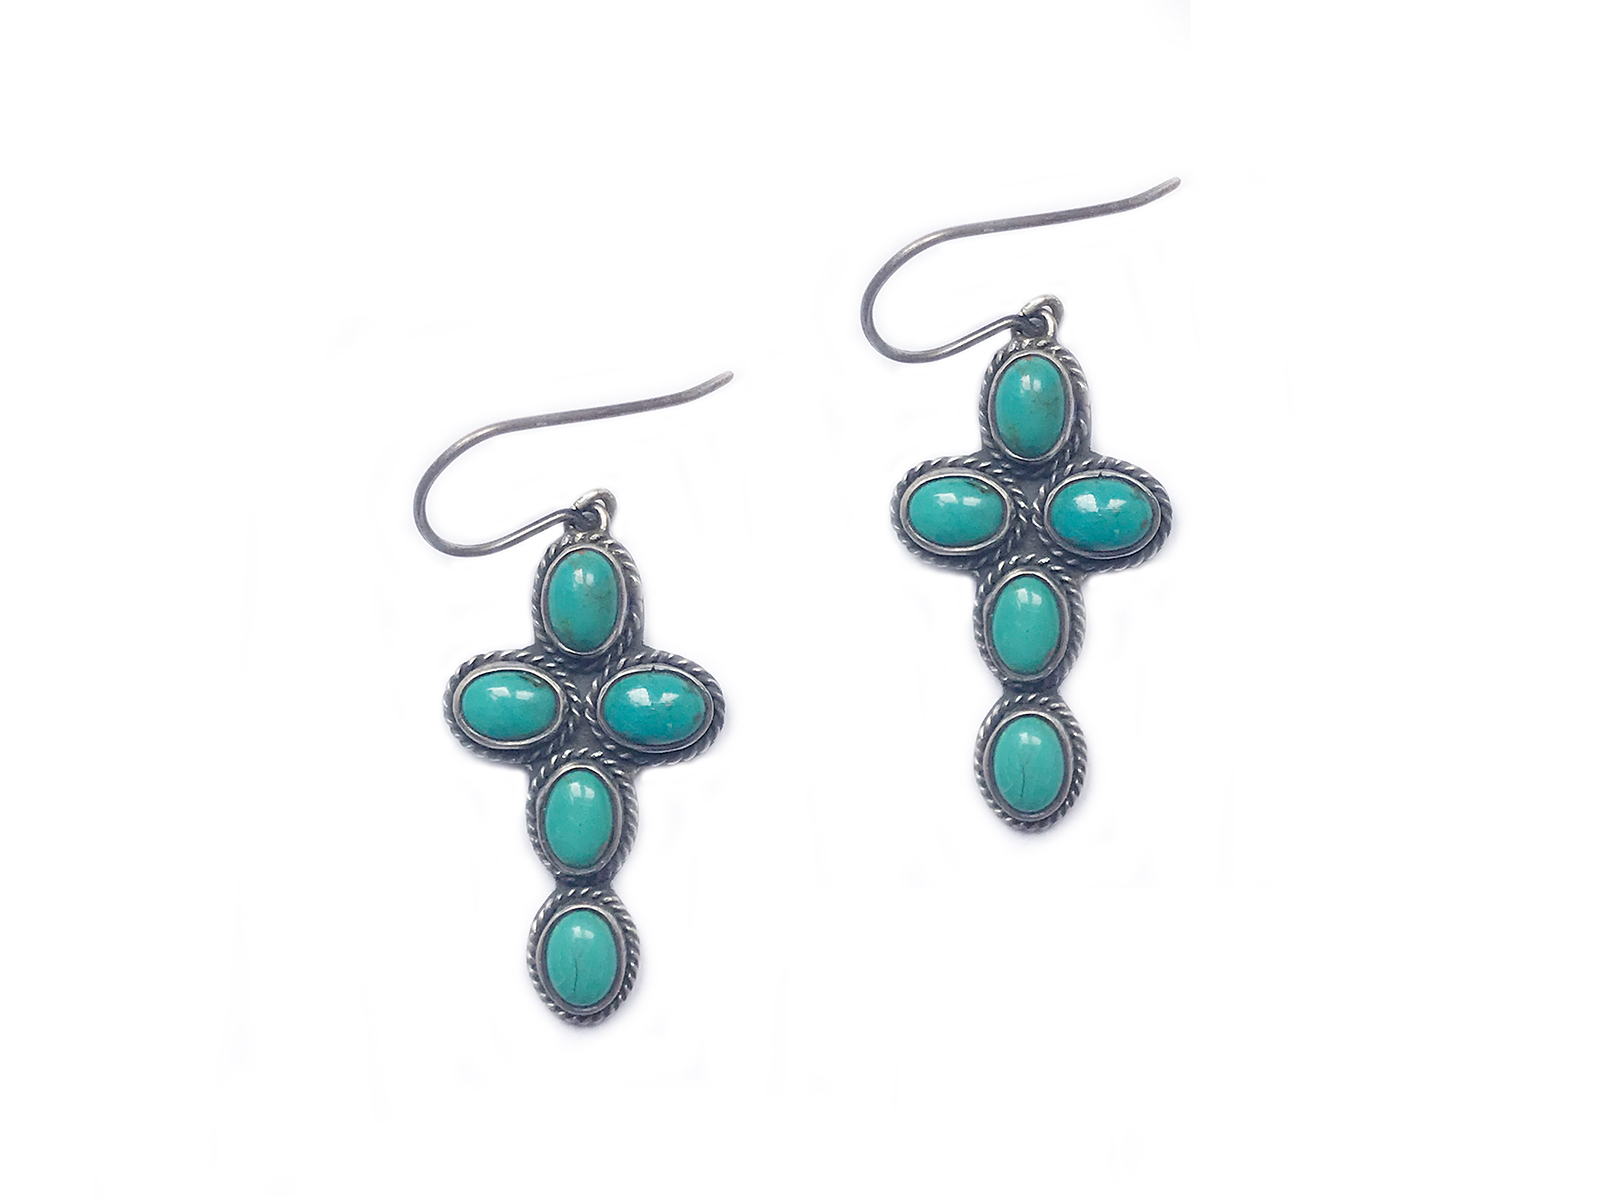 5 Stone Turquoise Cross Earrings